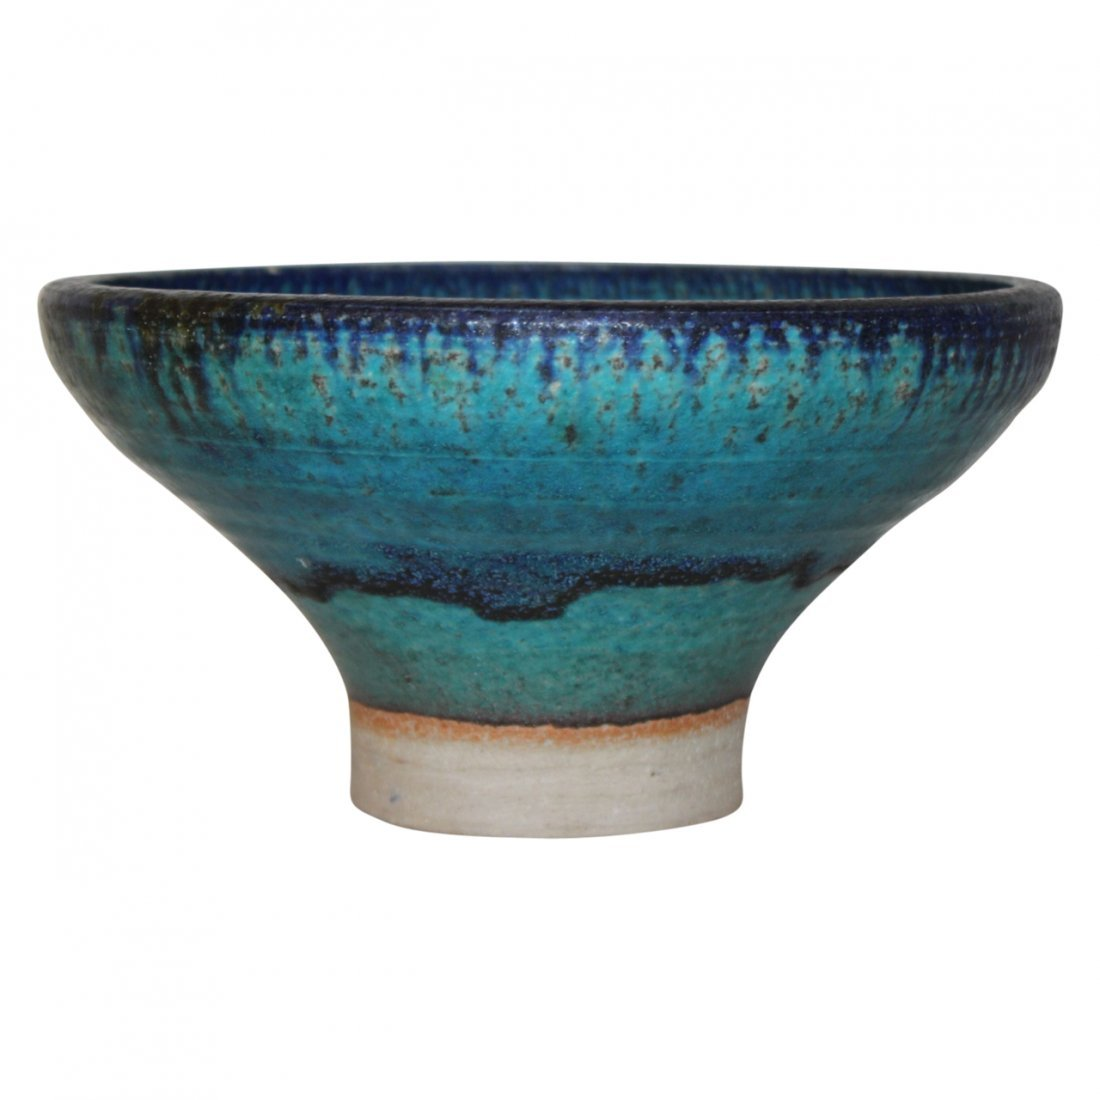 Bowl in the Manner of Lucie Rie